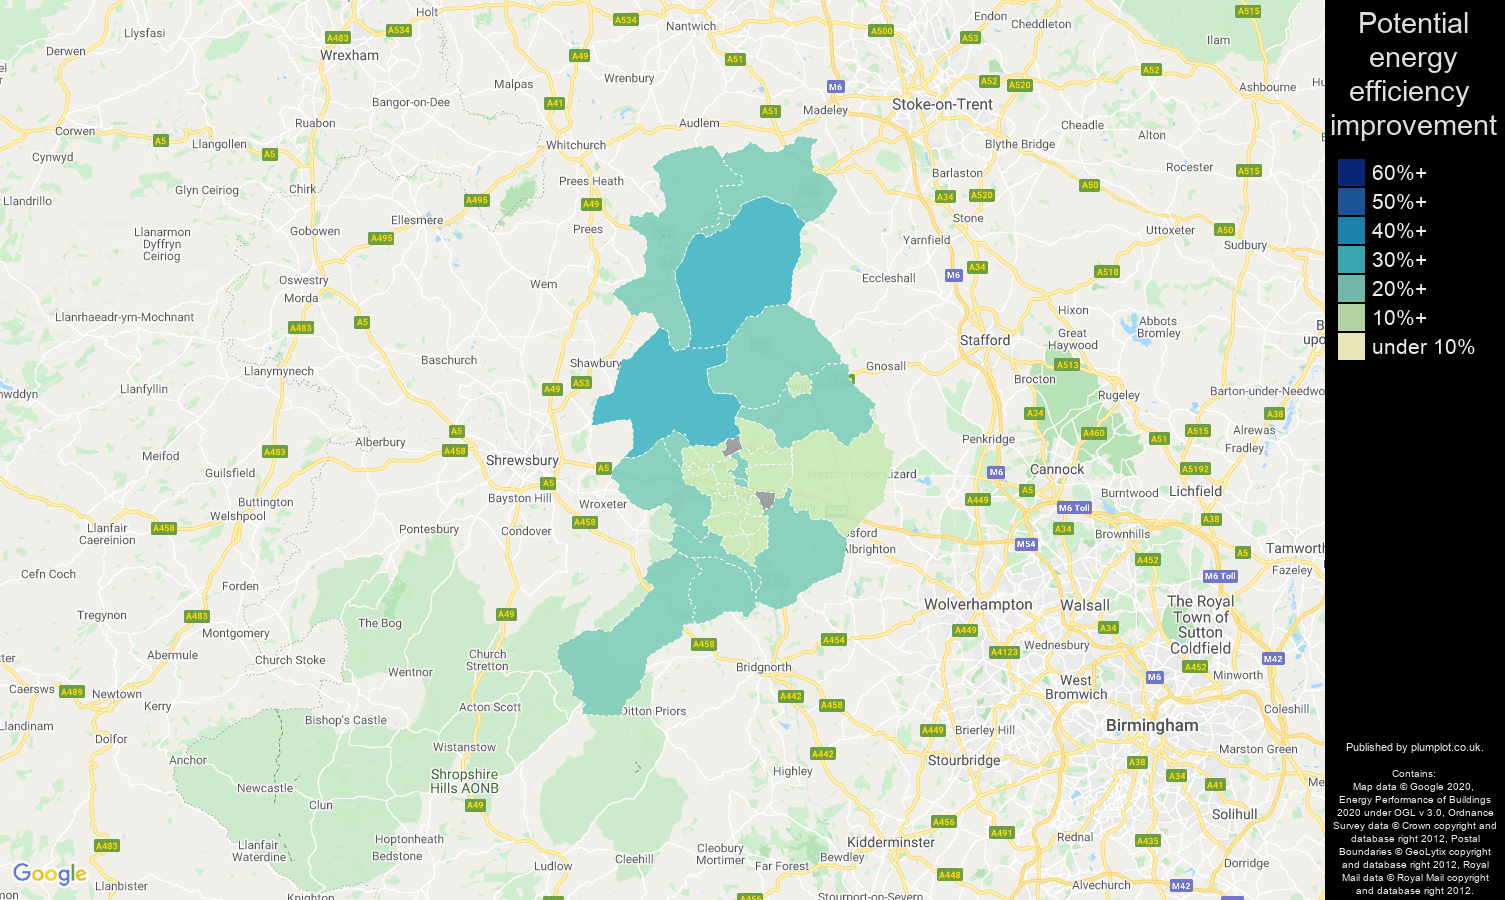 Telford map of potential energy efficiency improvement of properties